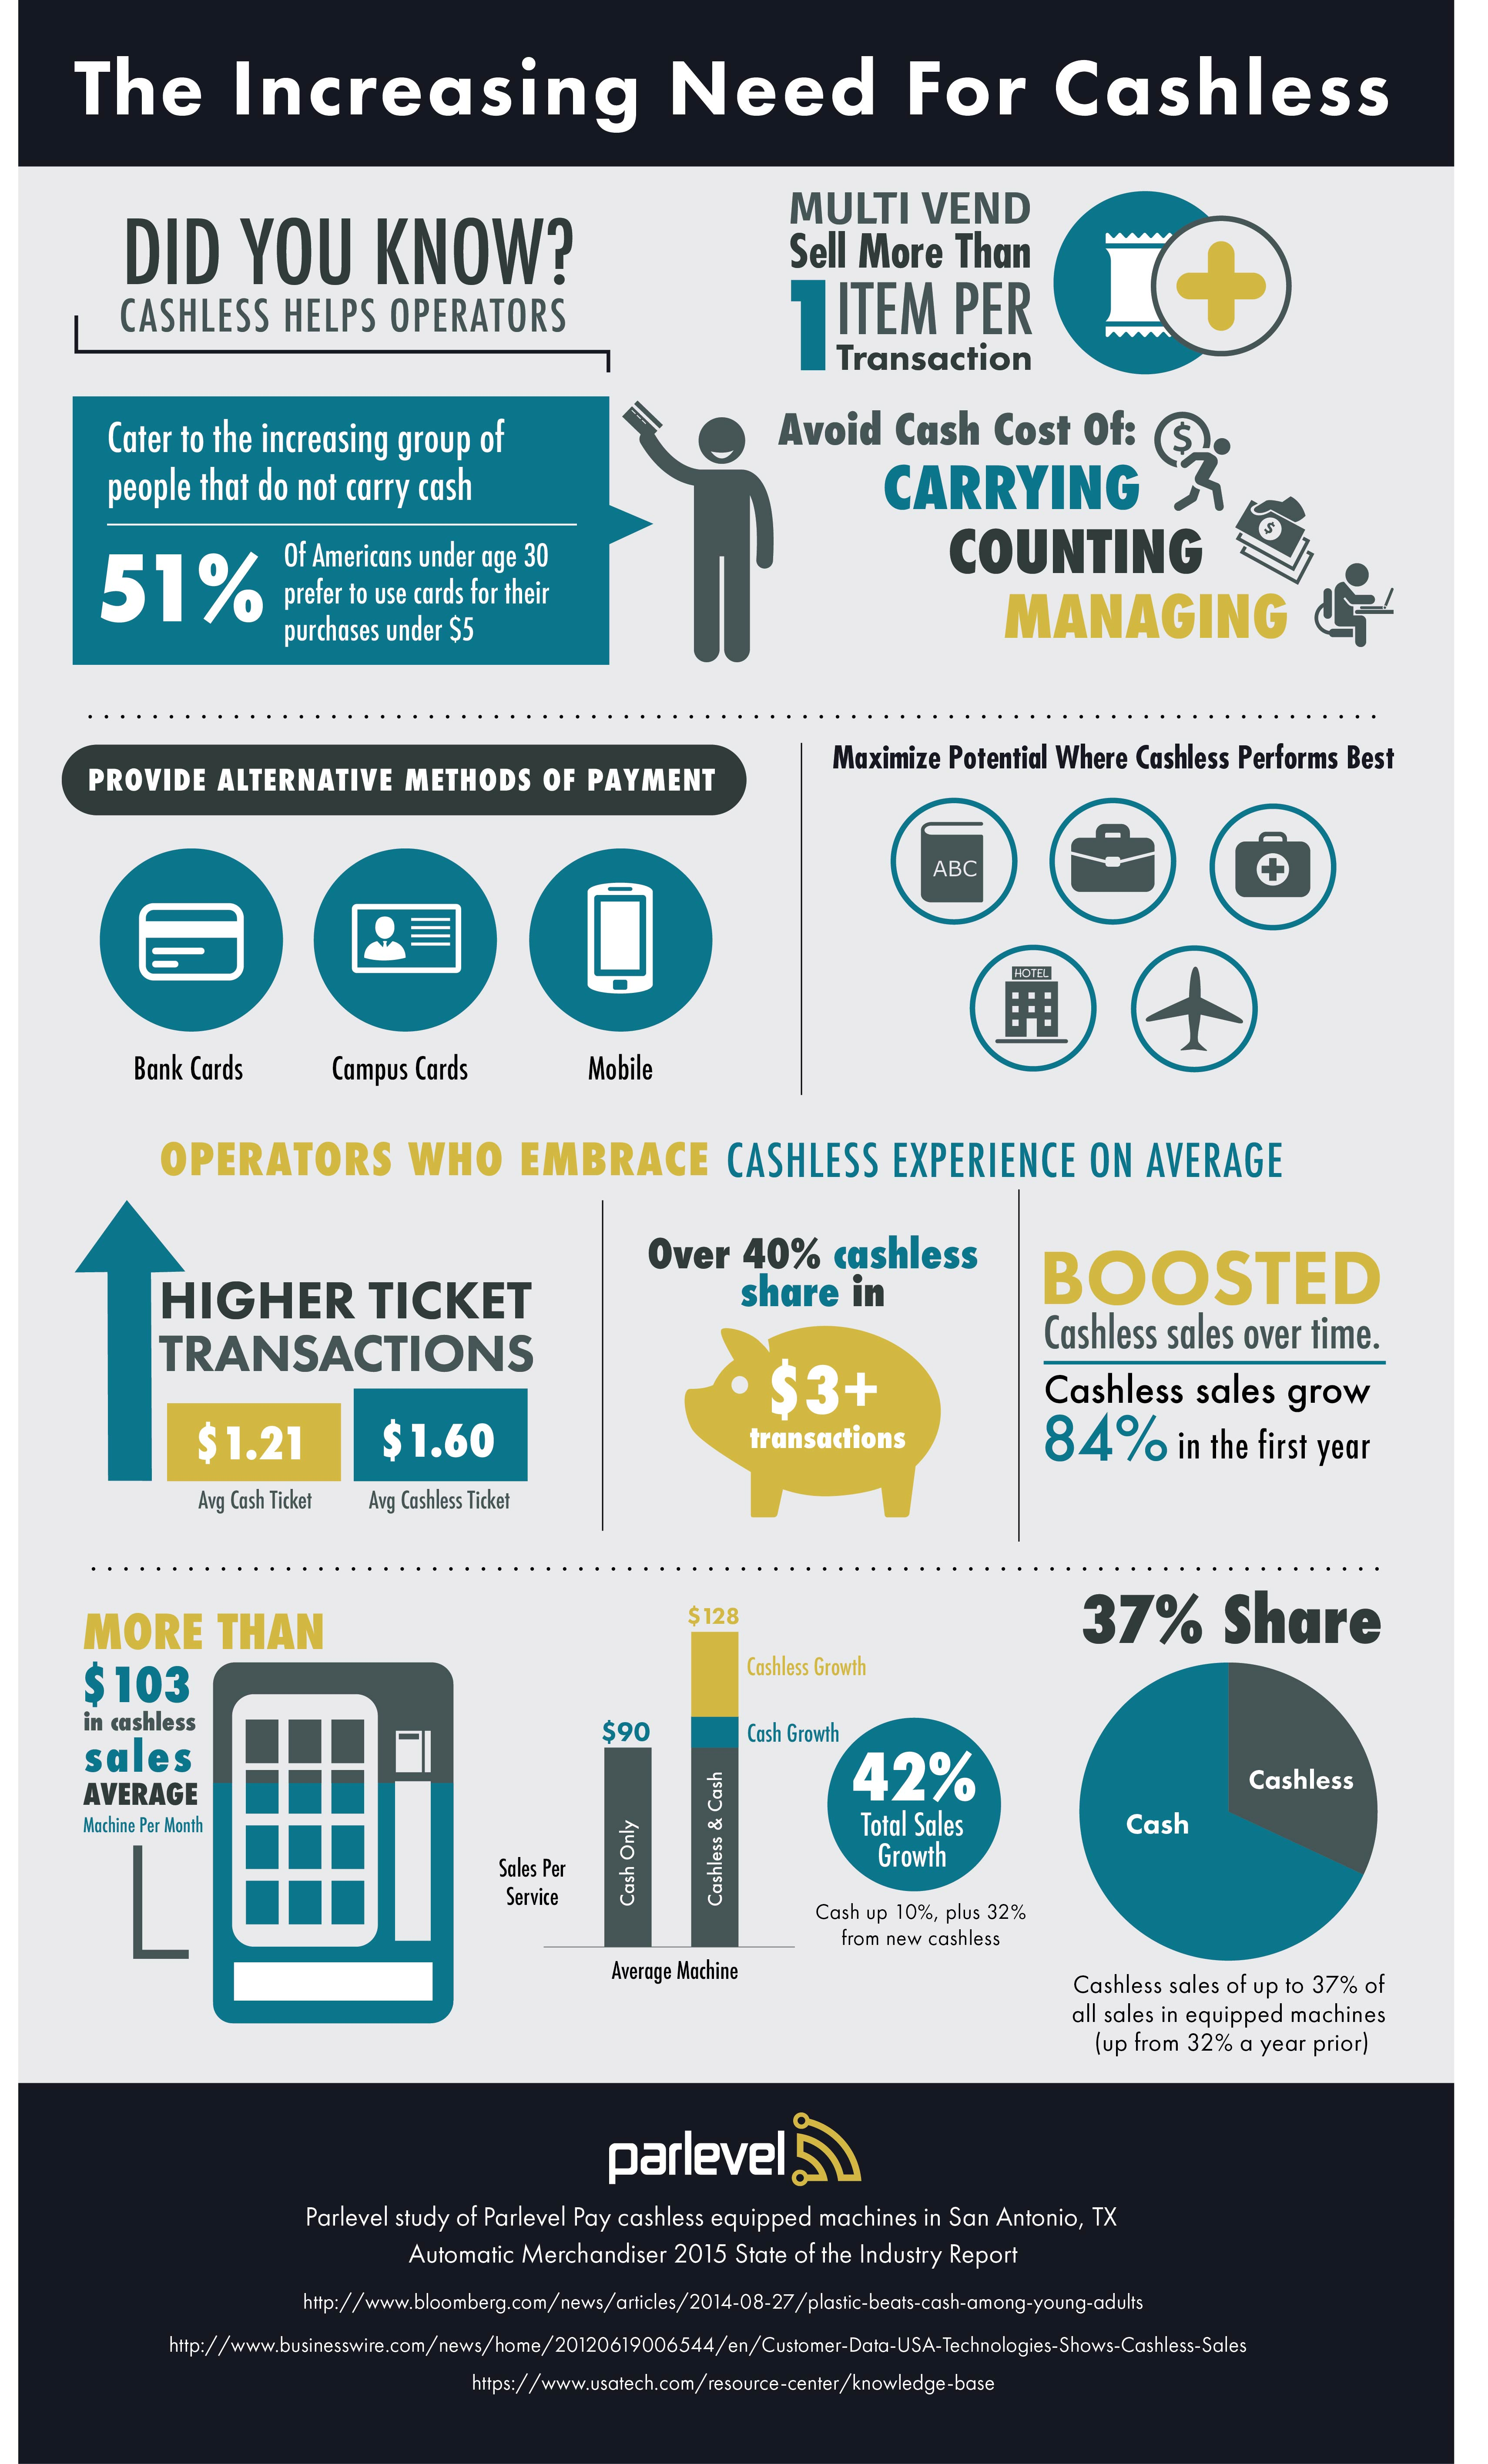 Parlevel Systems, cashless vending study, cashless vending infographic